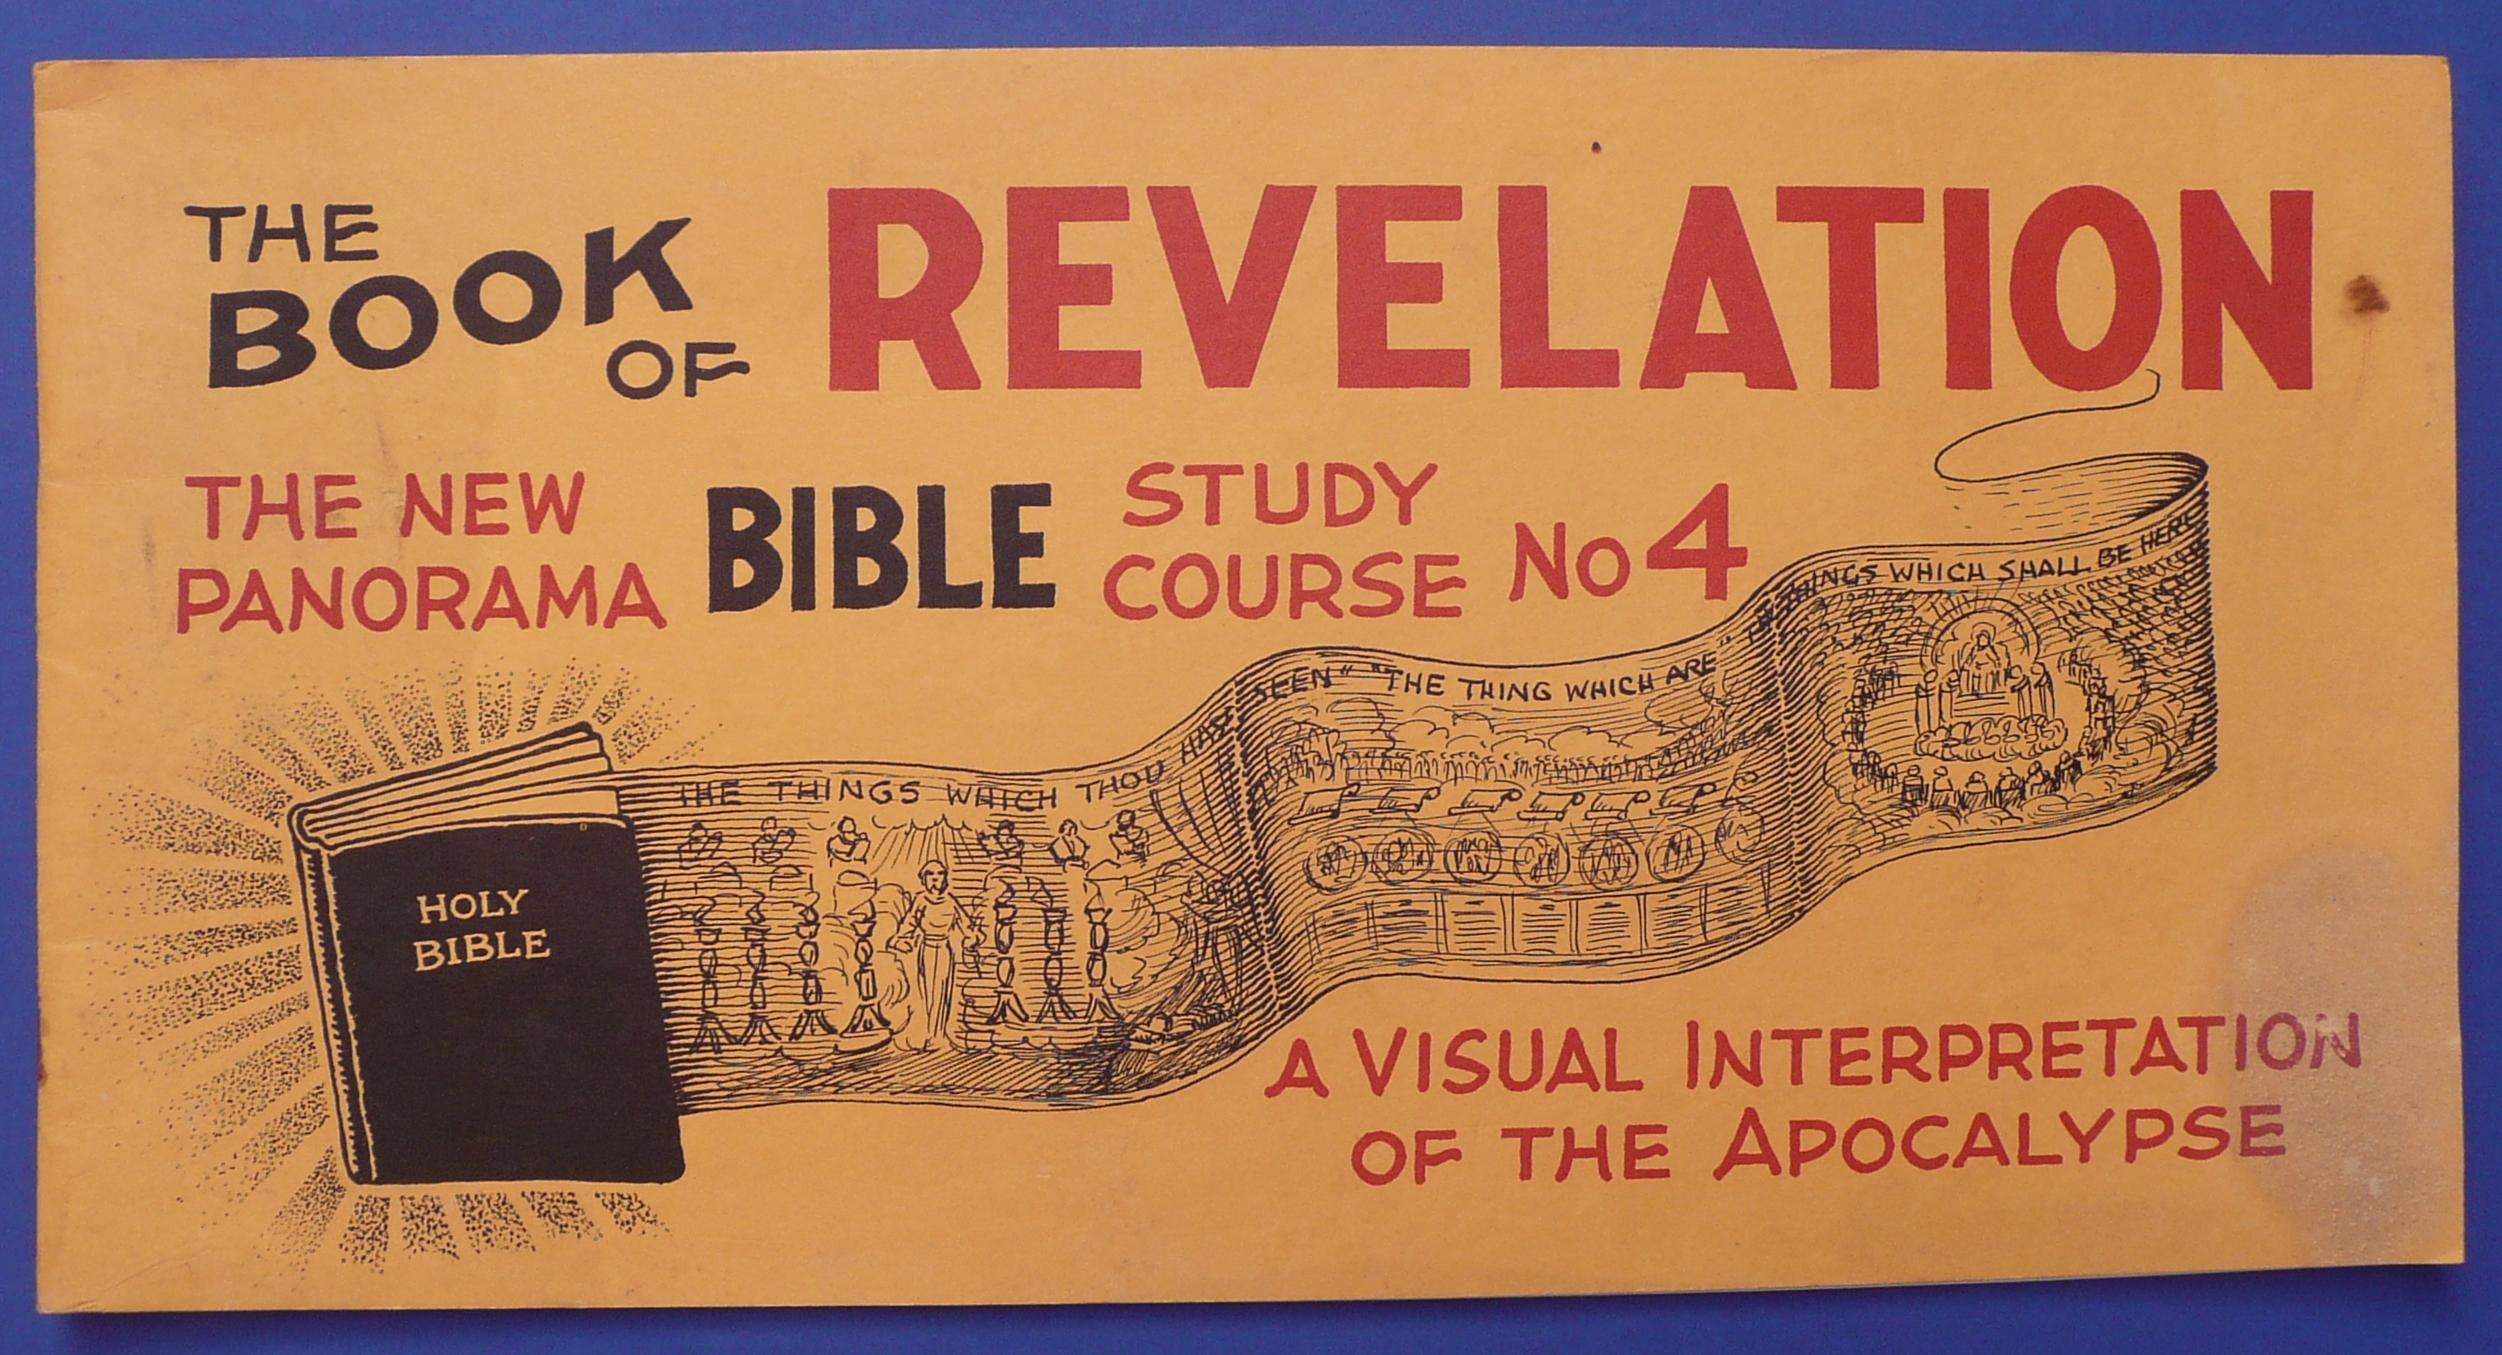 The Book of Revelation Bible Study Material